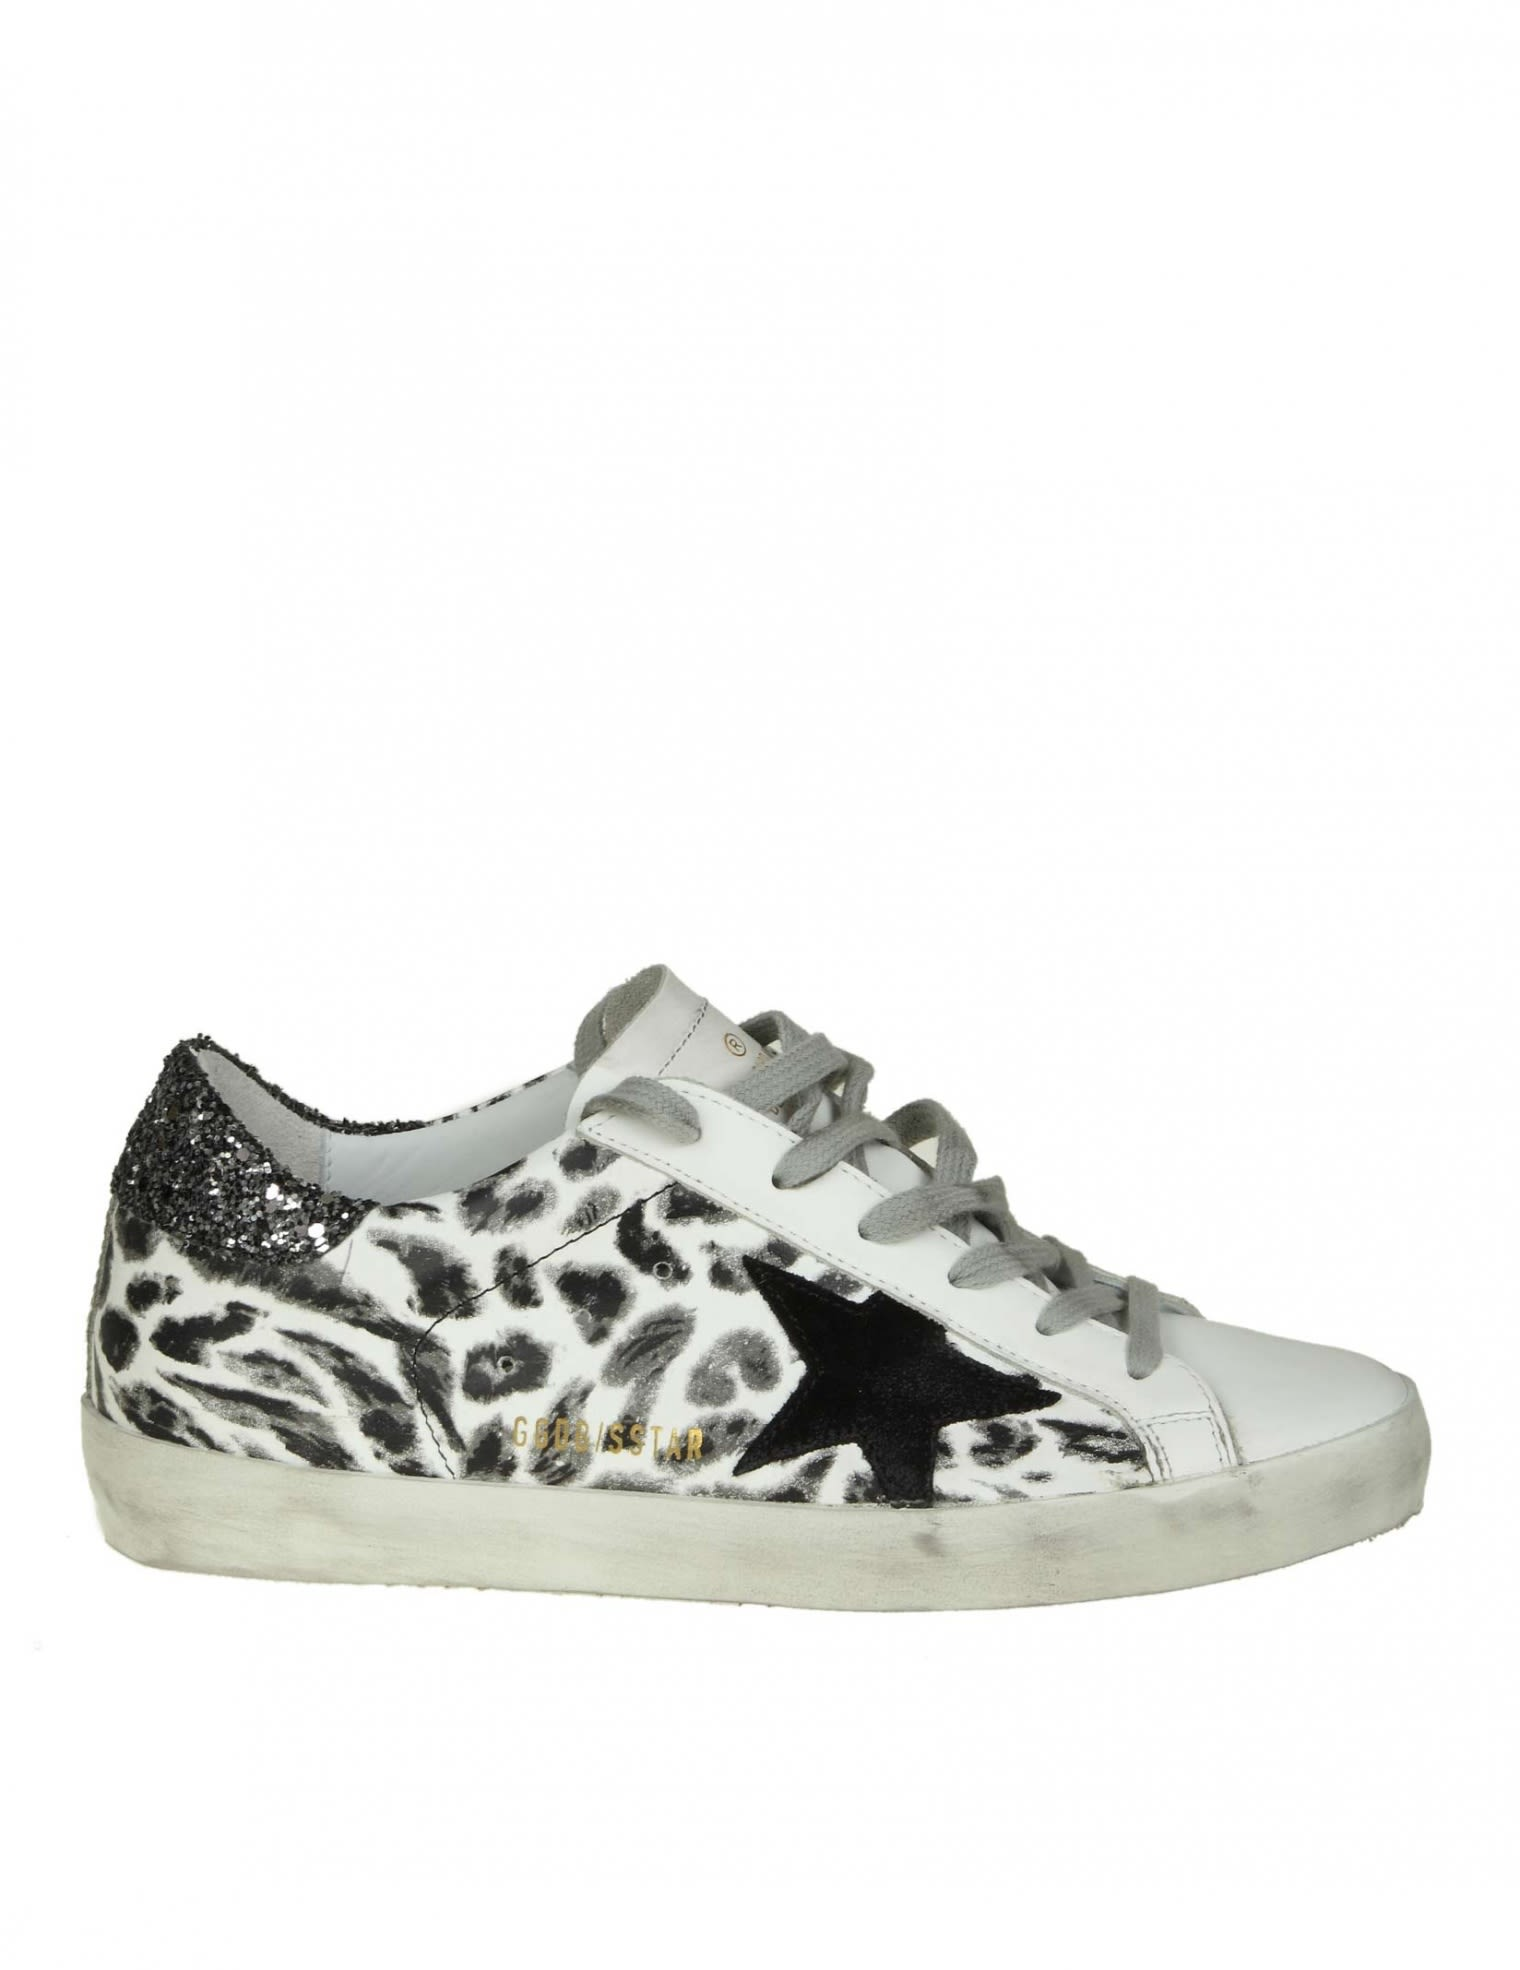 """Superstar"" Sneakers In White Leather With Leoparded Prin, Black Leopard"